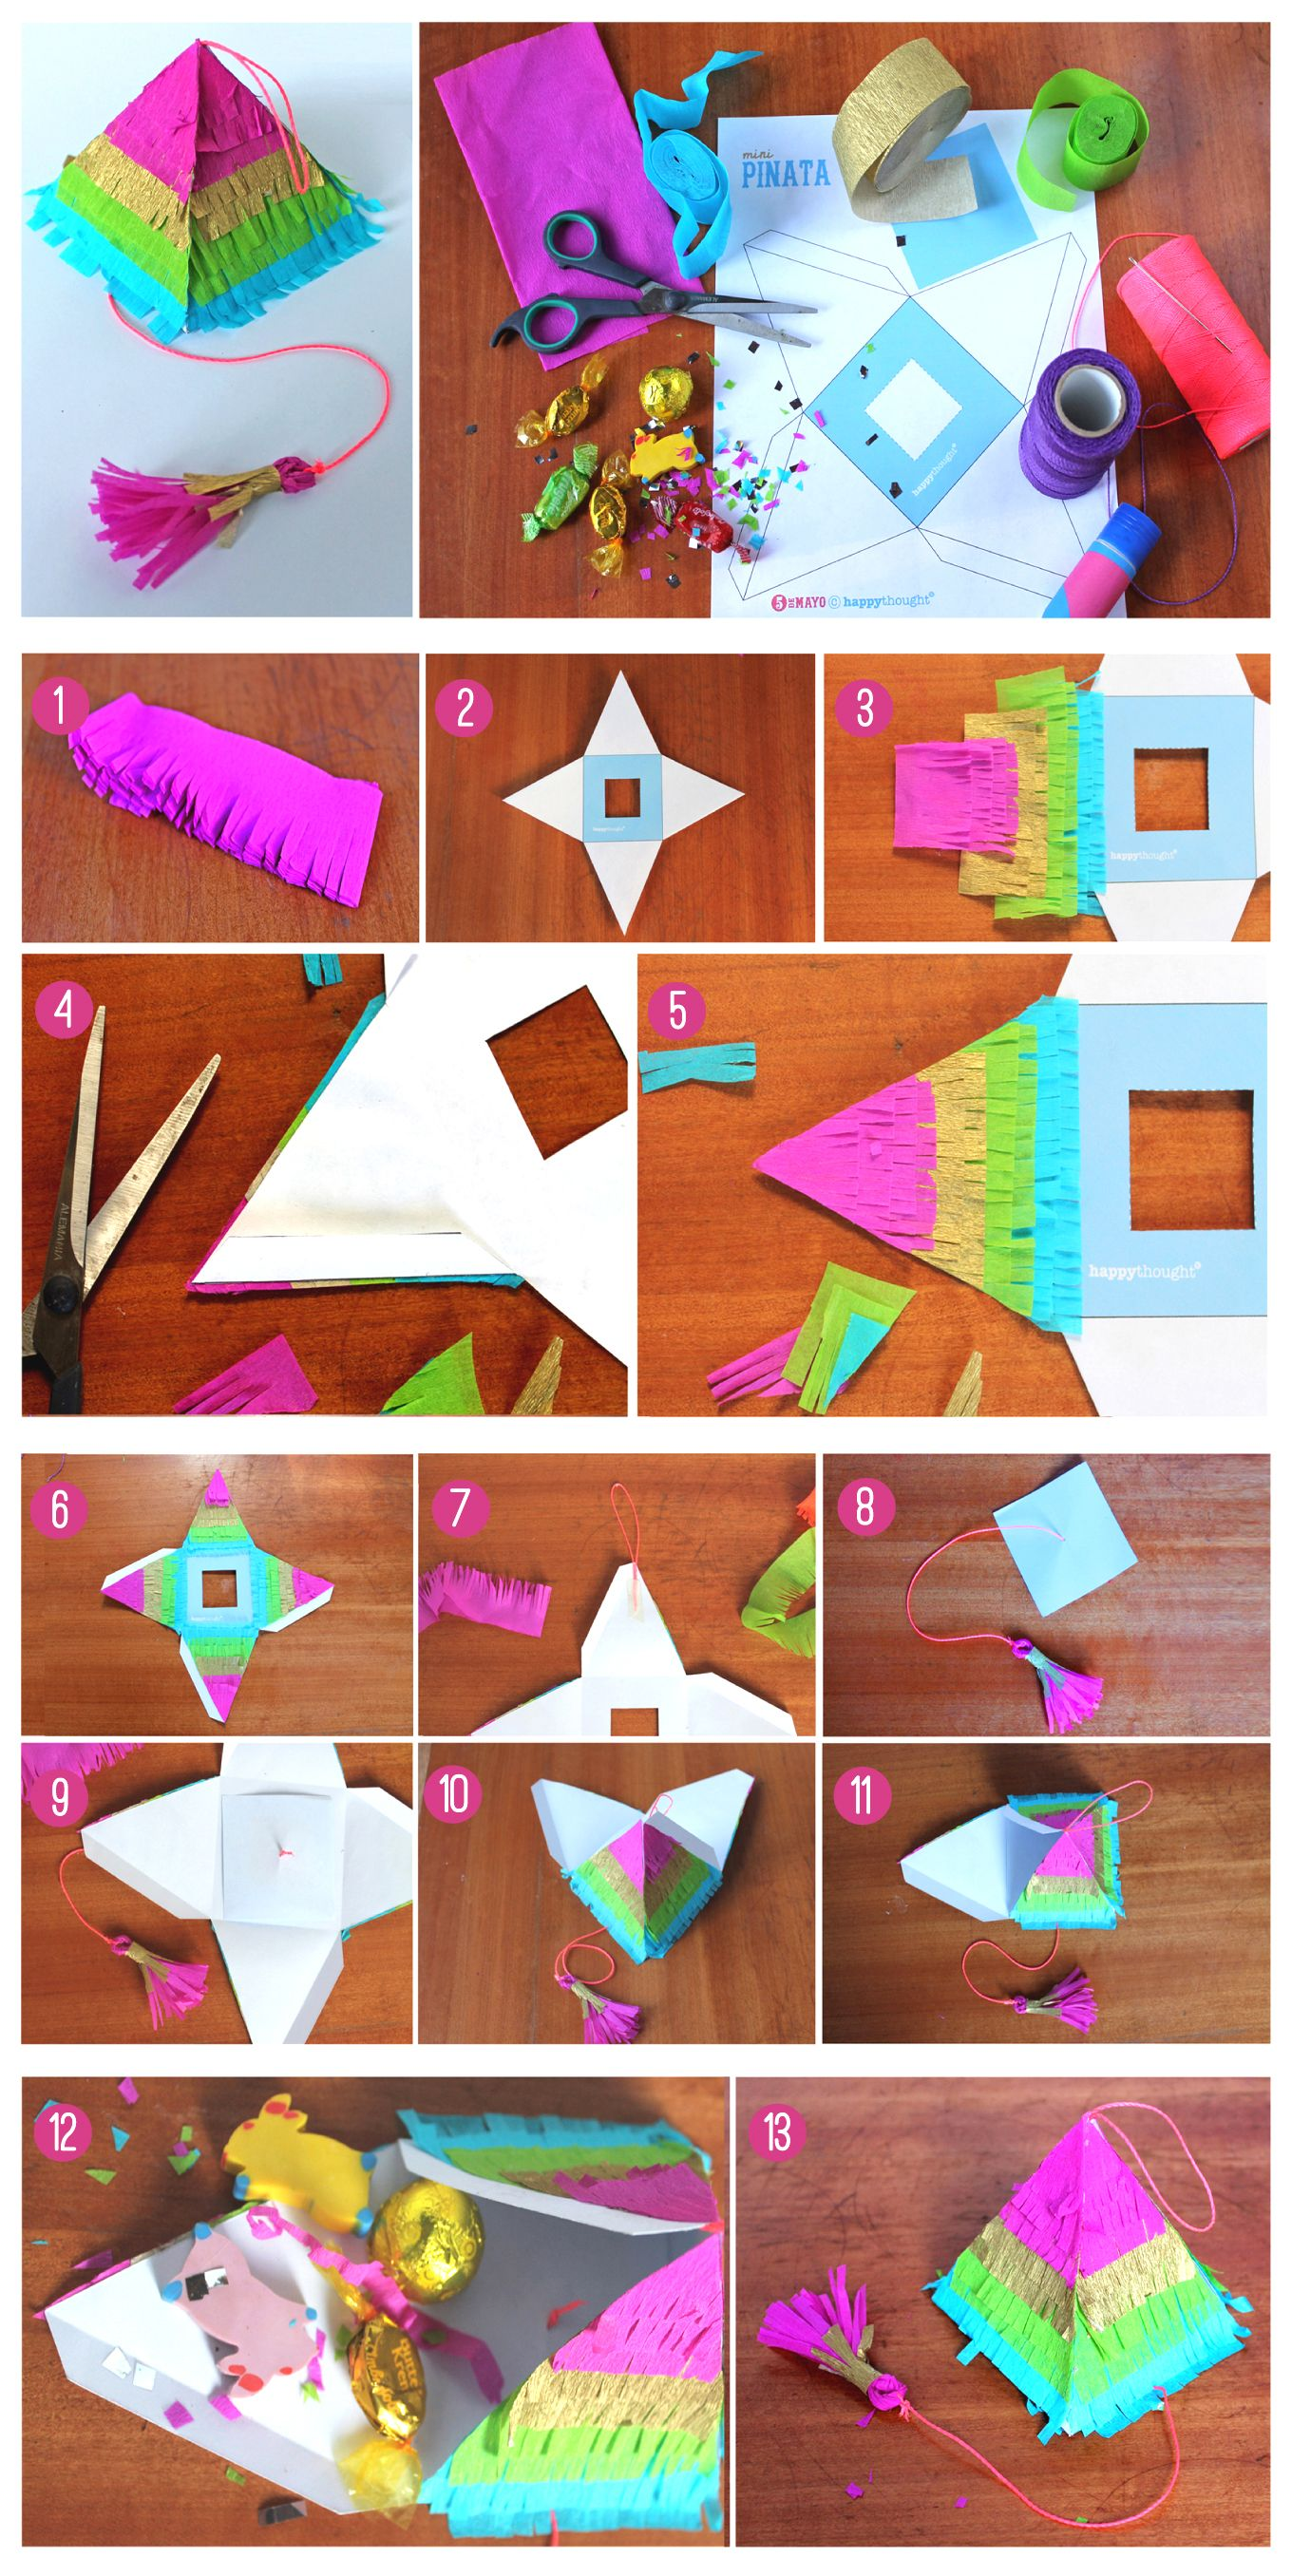 Celebramos Happythoughtcouk Craft Tutorials How To Make A Pinata DIY Step By